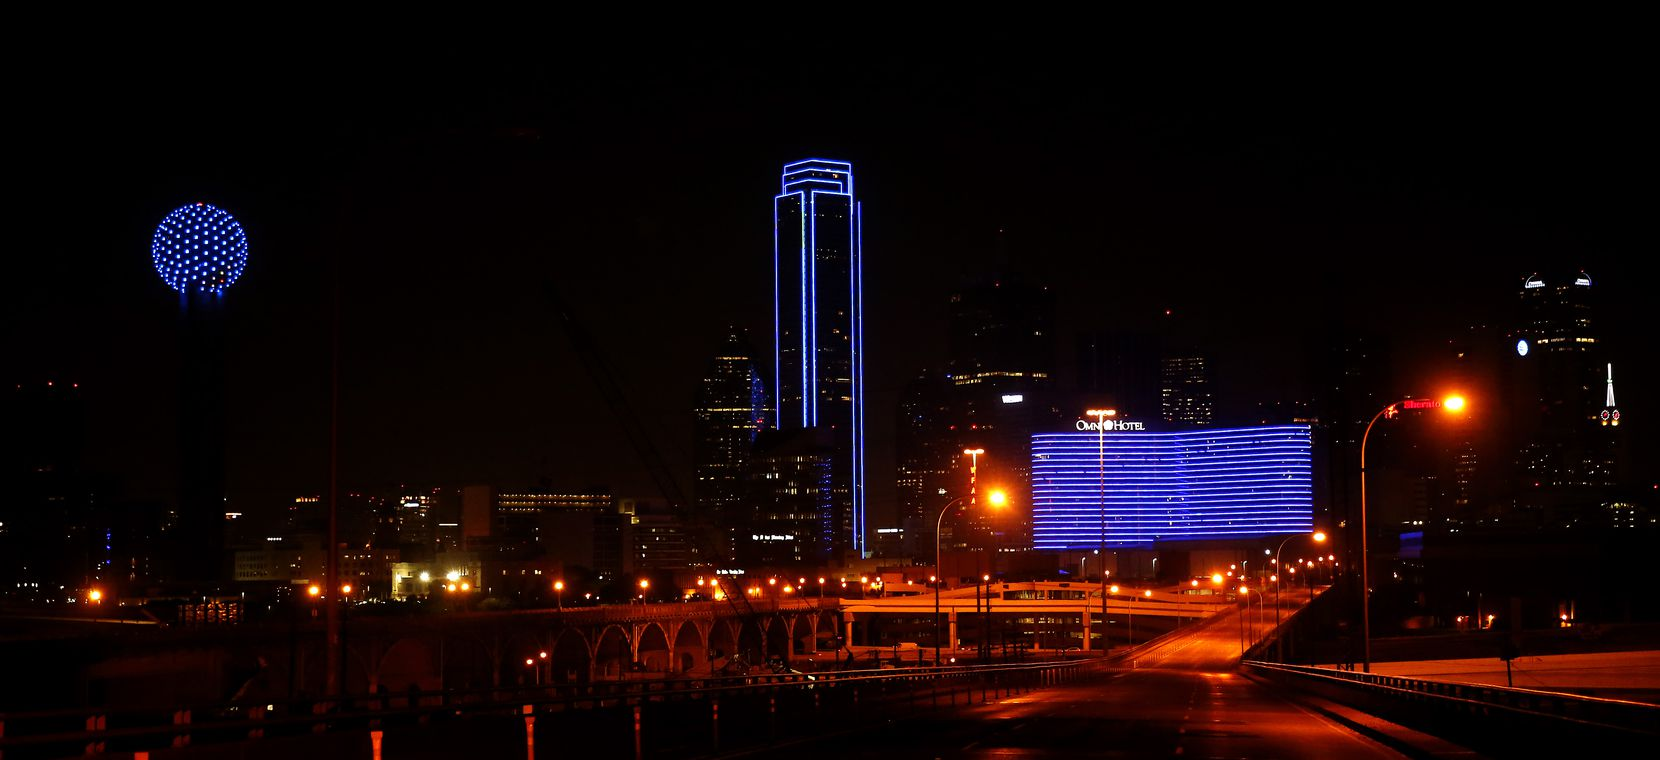 Usually outlined in green lights, the Bank of America Plaza switched to blue to honor law enforcement officers.